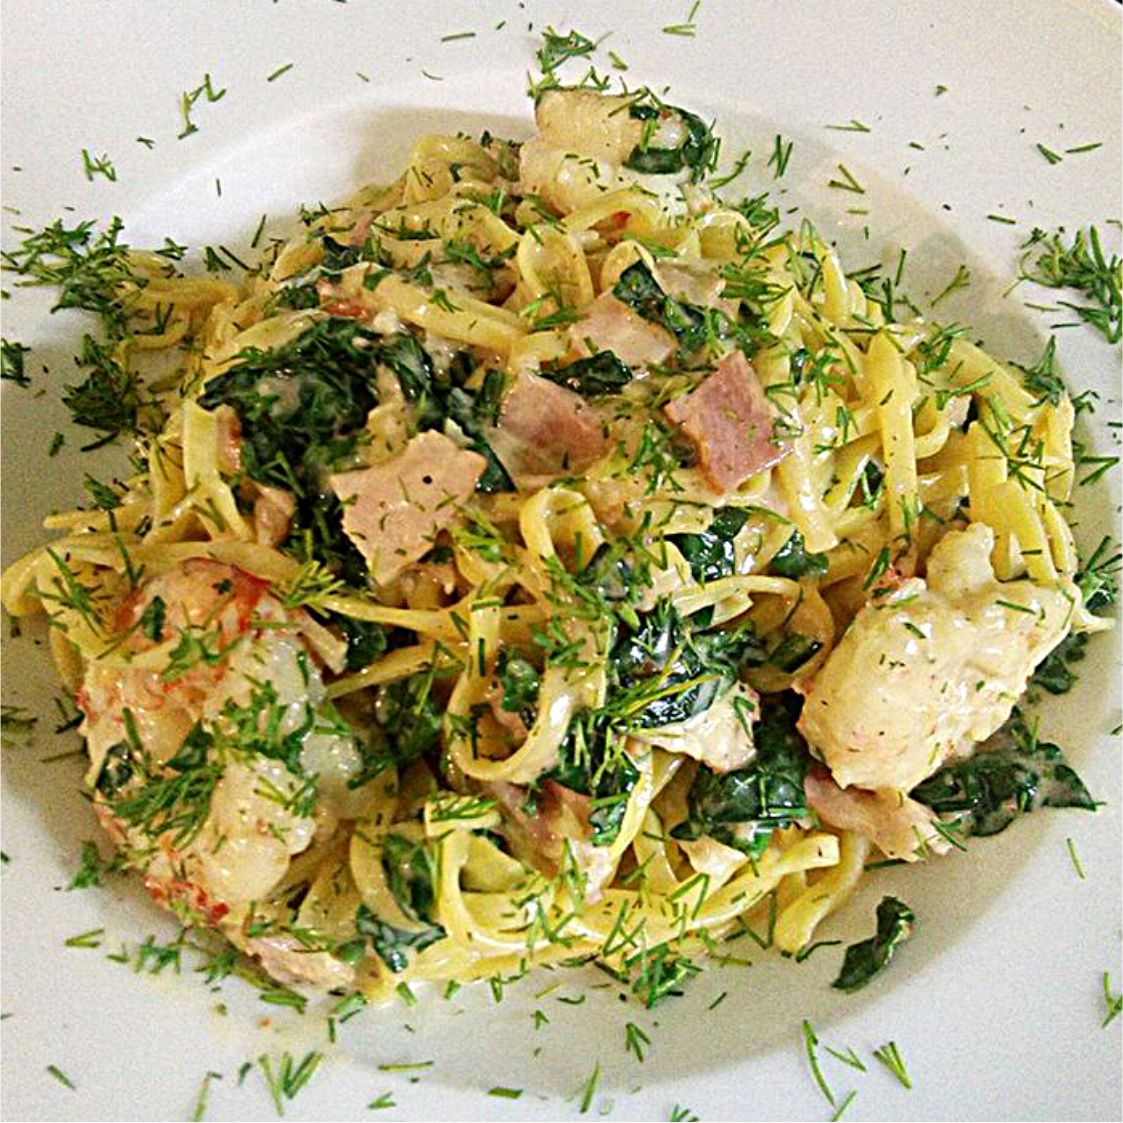 whole grain tagliatelle with prawns & spinach